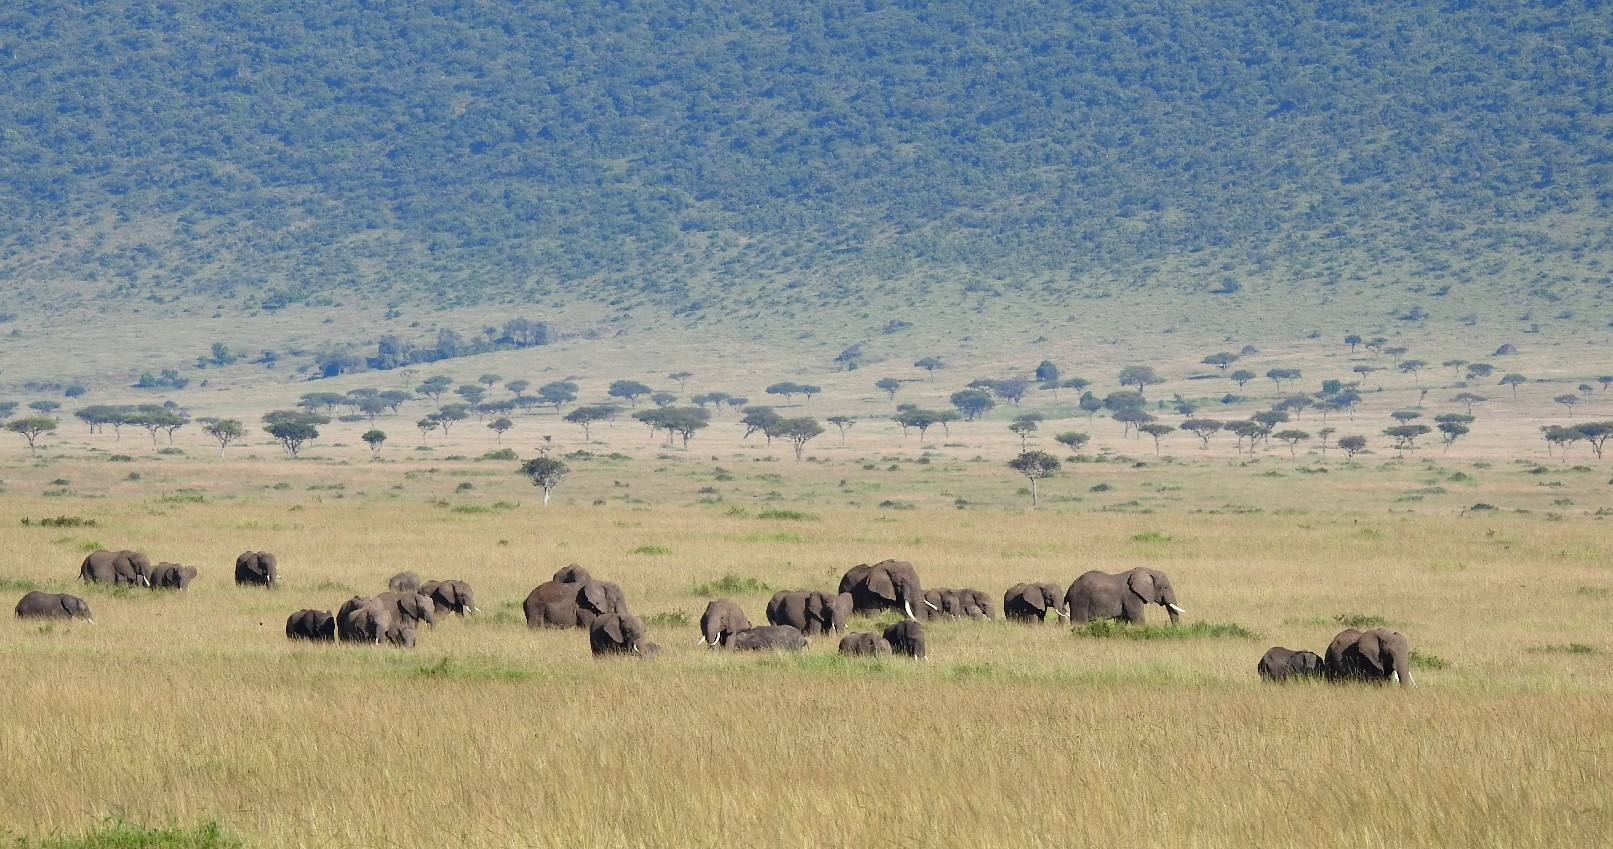 Elephant rumbles are low-frequency vocalizations that can travel up to several kilometers and could enable large dispersed herds like this one in Kenya to stay in touch.